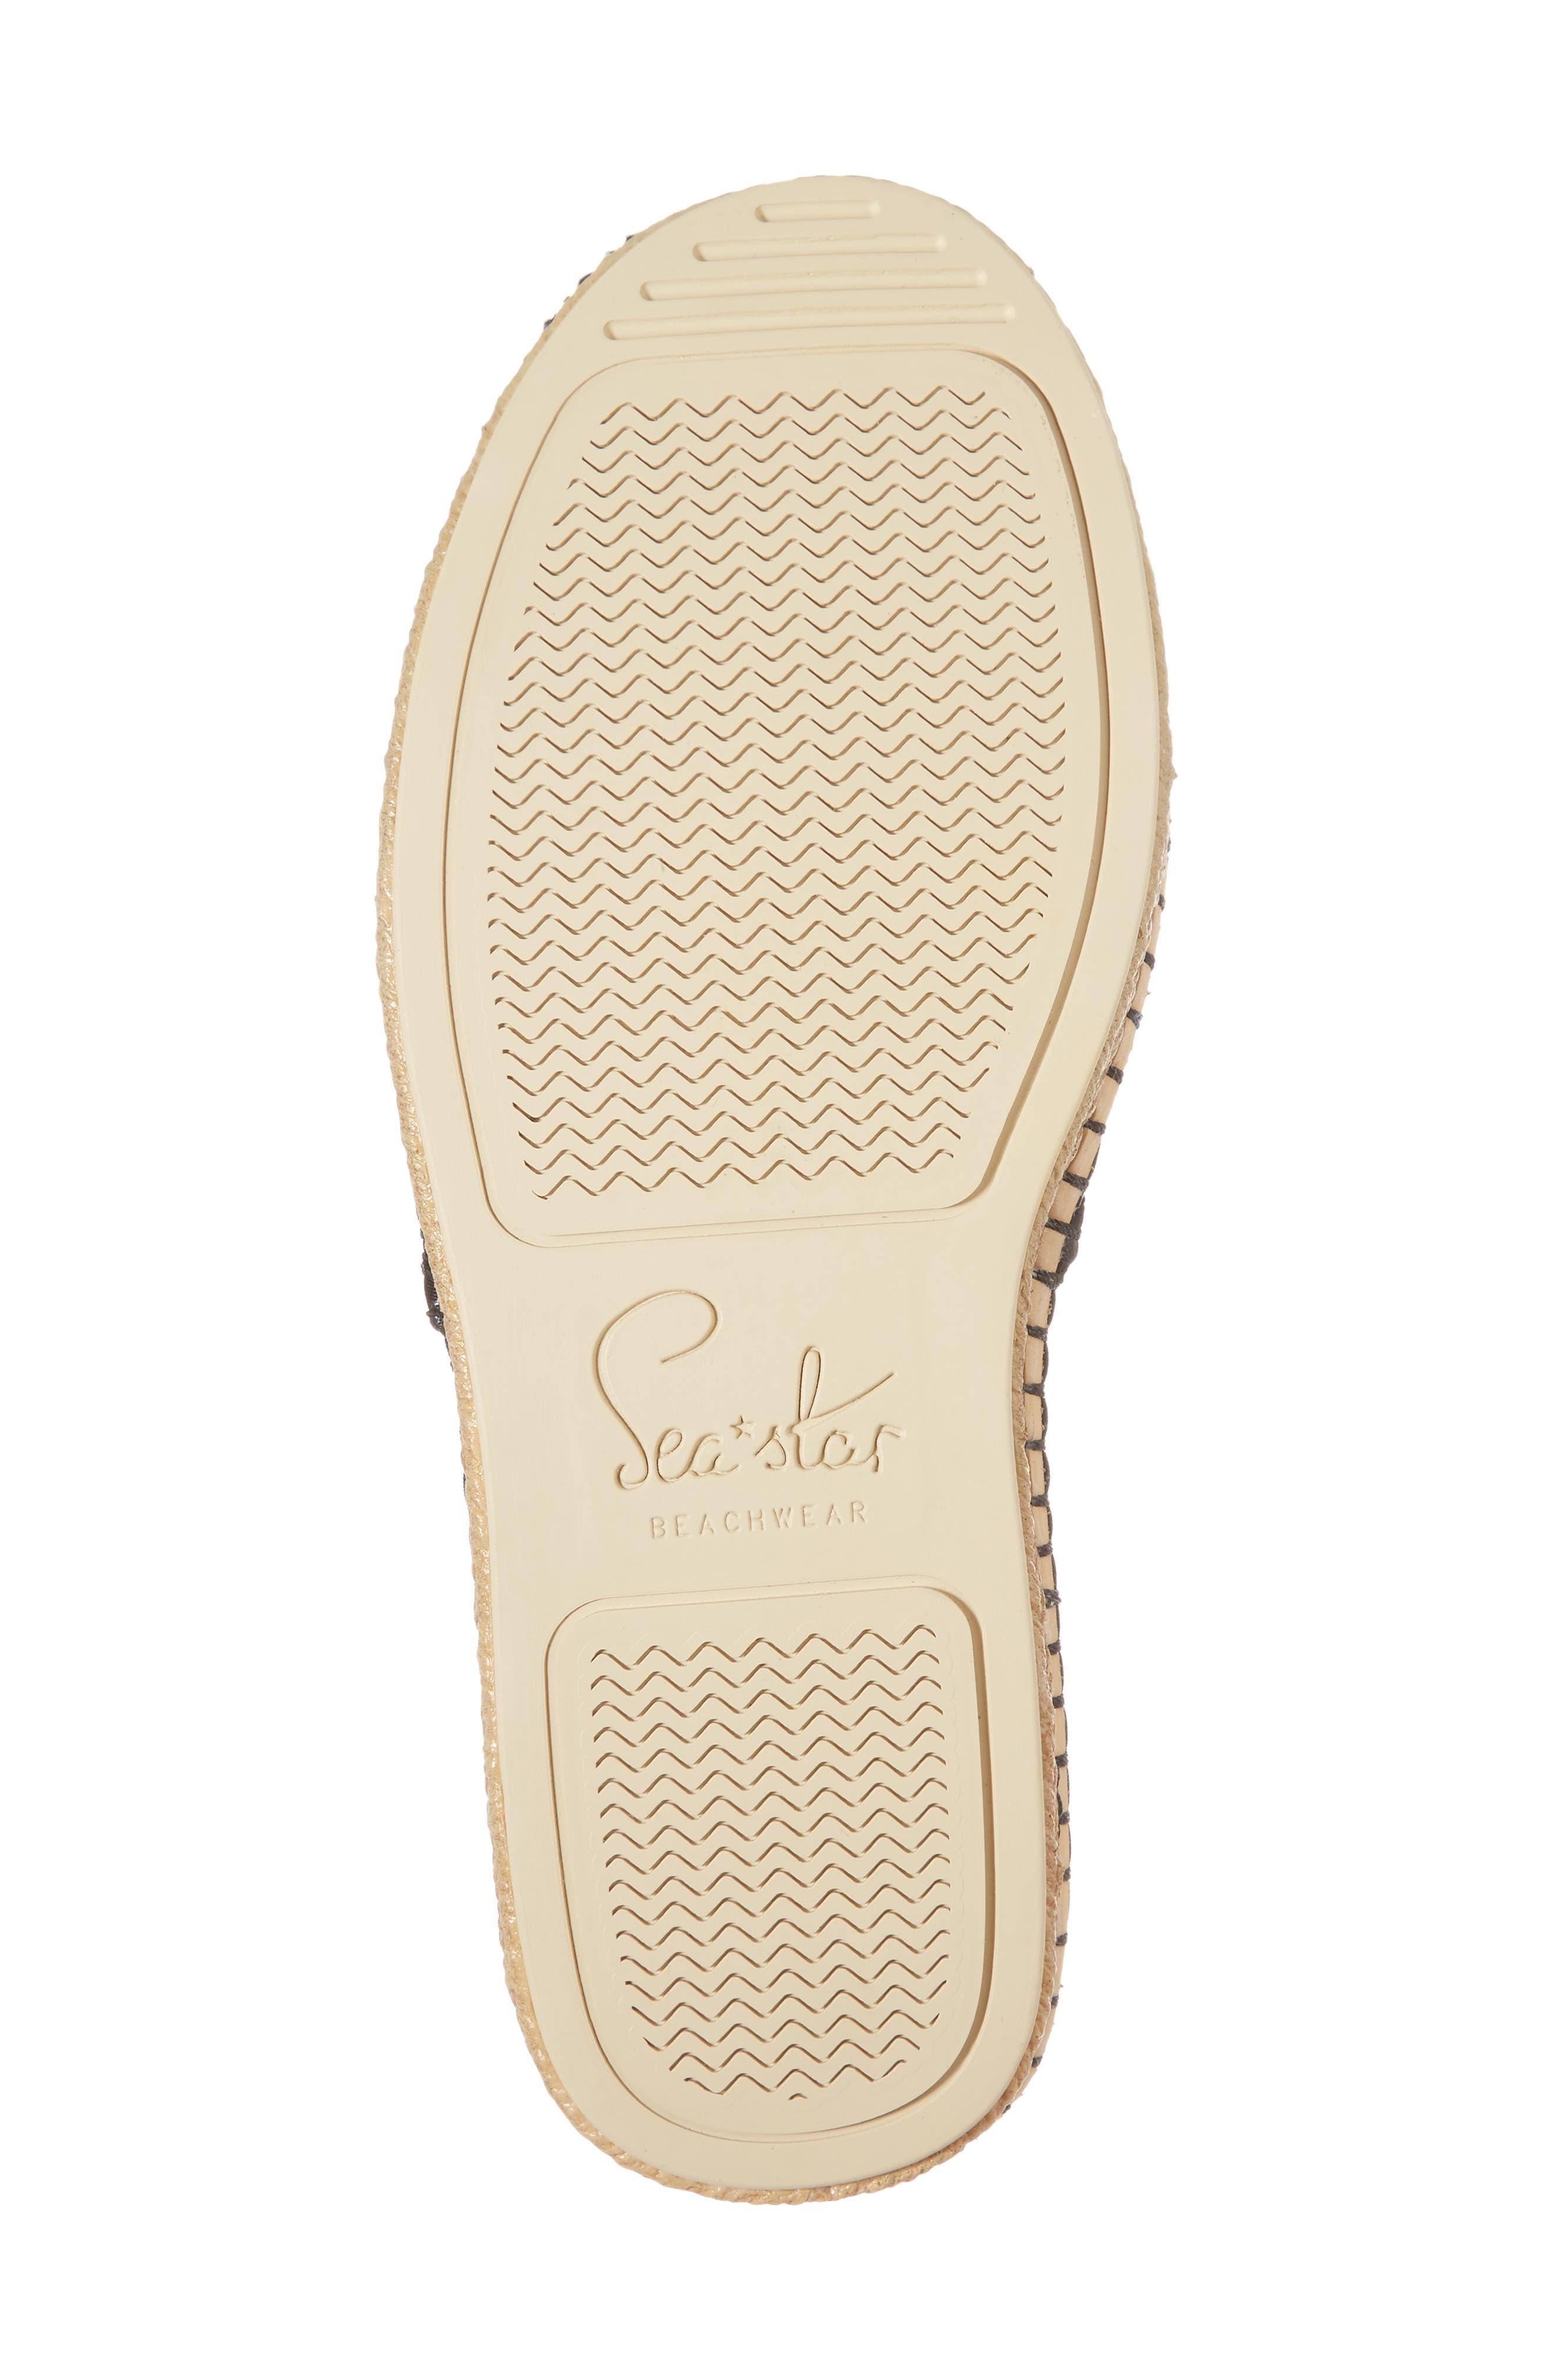 Sea Star Beachcomber Espadrille Sandal,                             Alternate thumbnail 6, color,                             BLACK EYELET